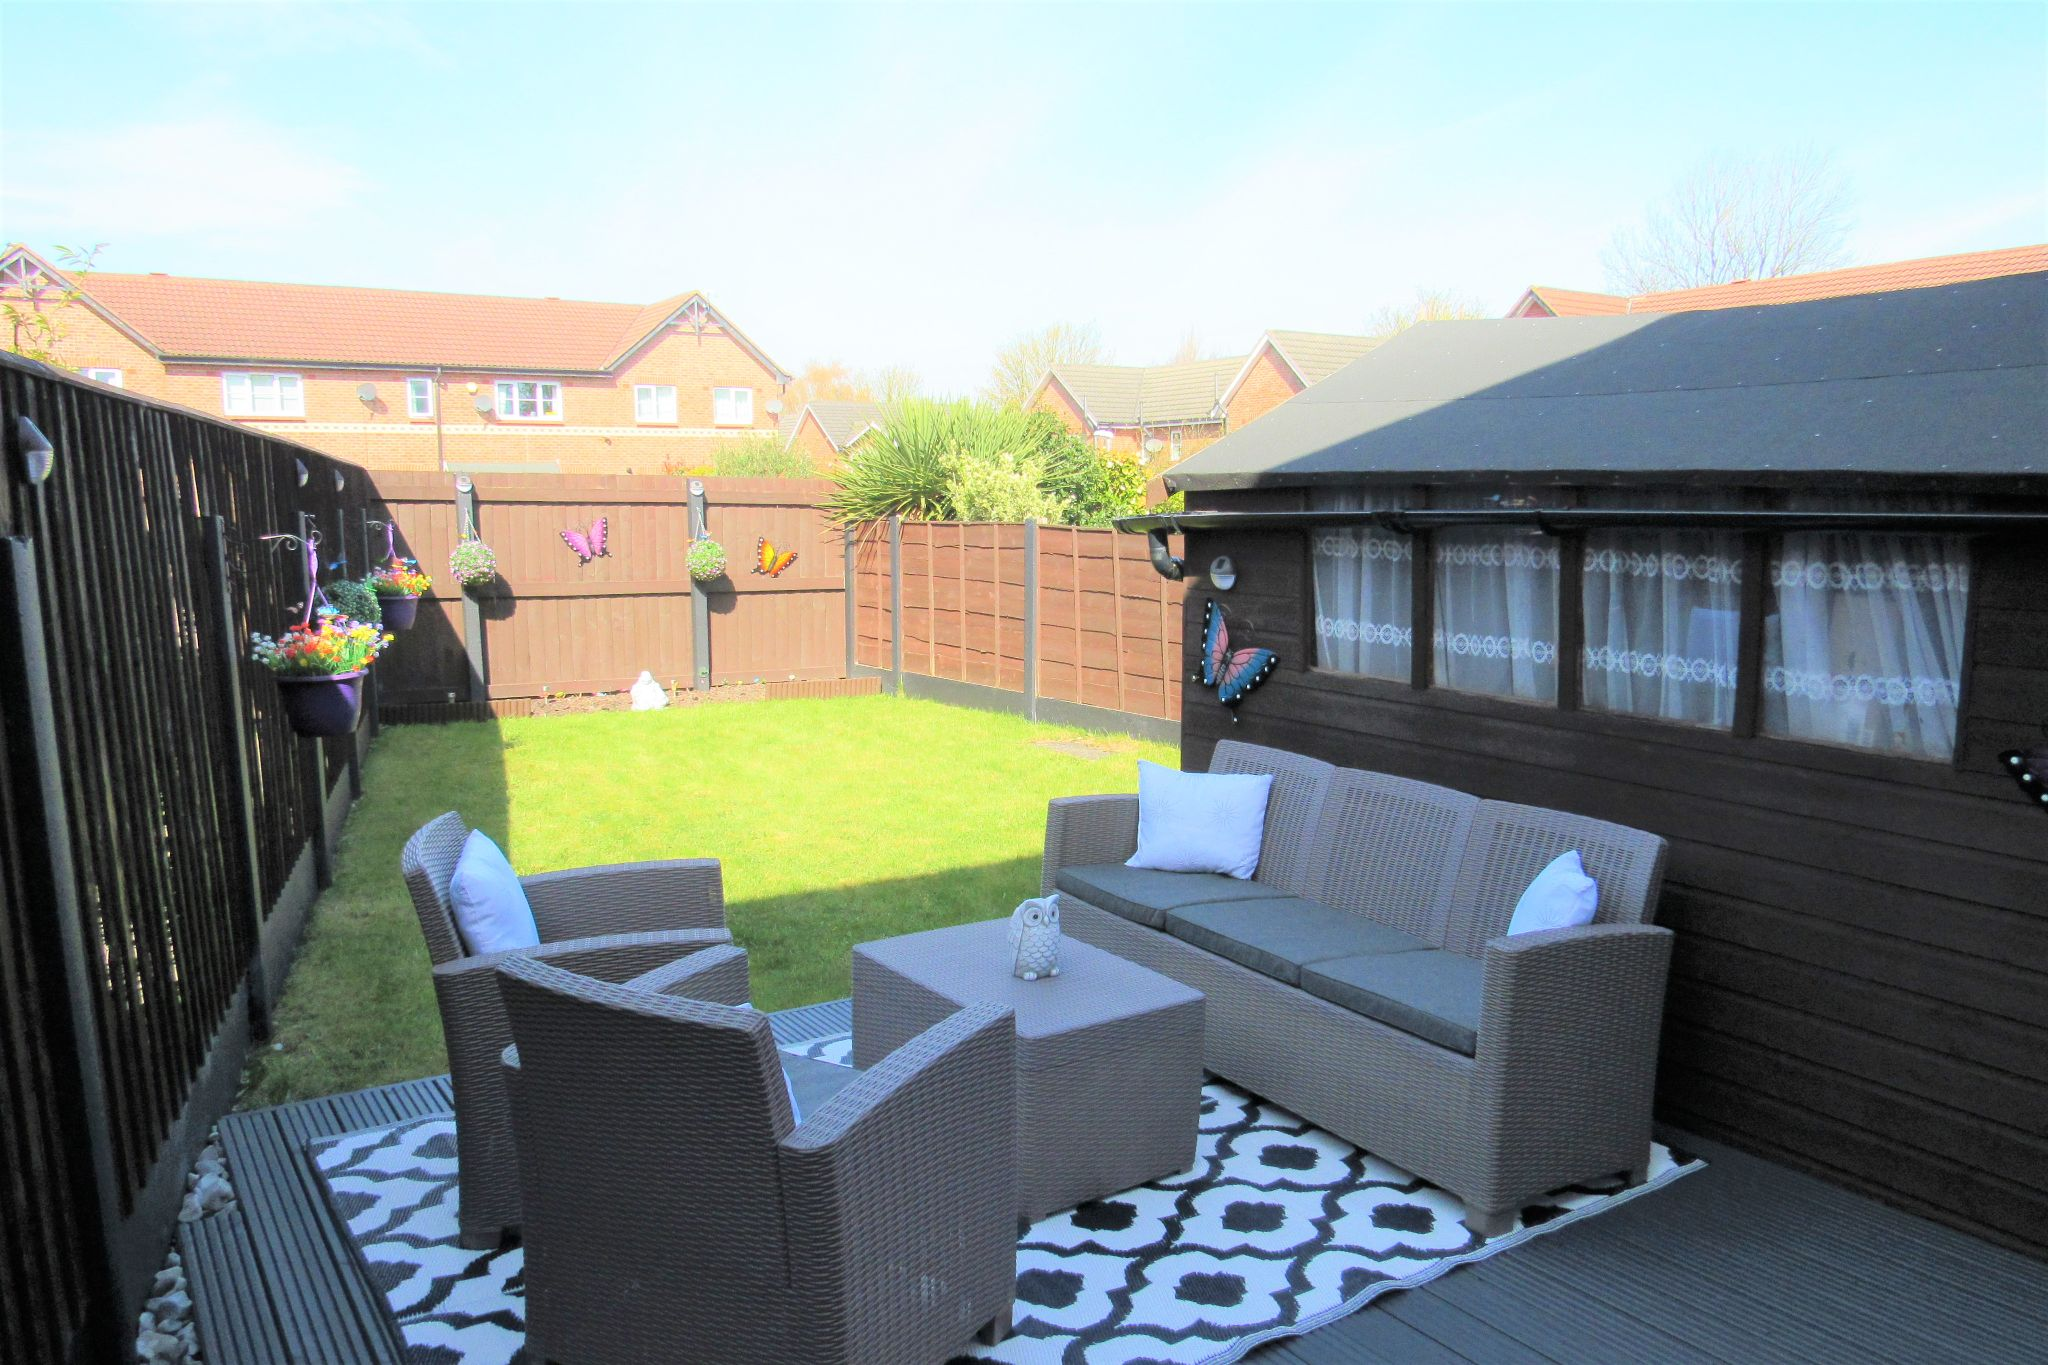 2 bedroom semi-detached house SSTC in Manchester - Photograph 21.